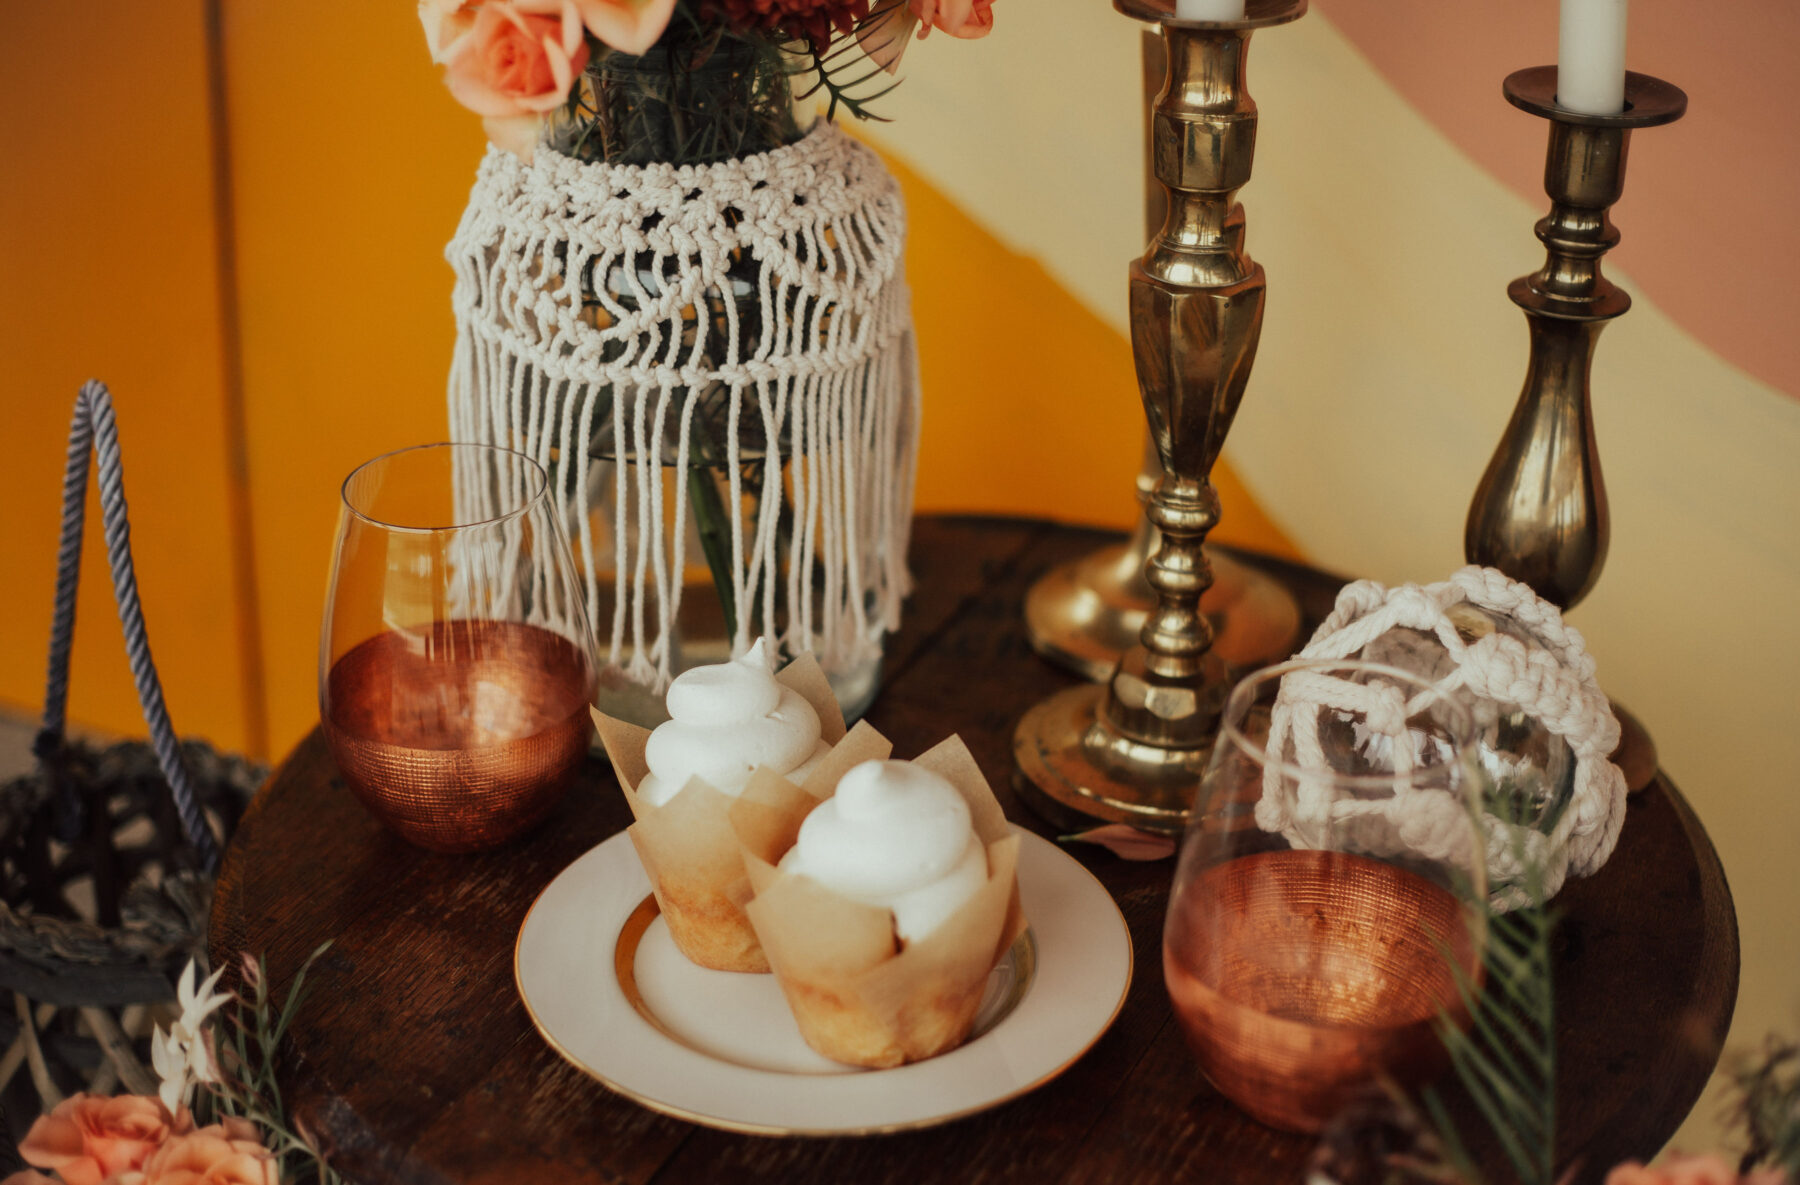 Wedding desserts: Bright Bohemian Photo Shoot from Ina J Designs